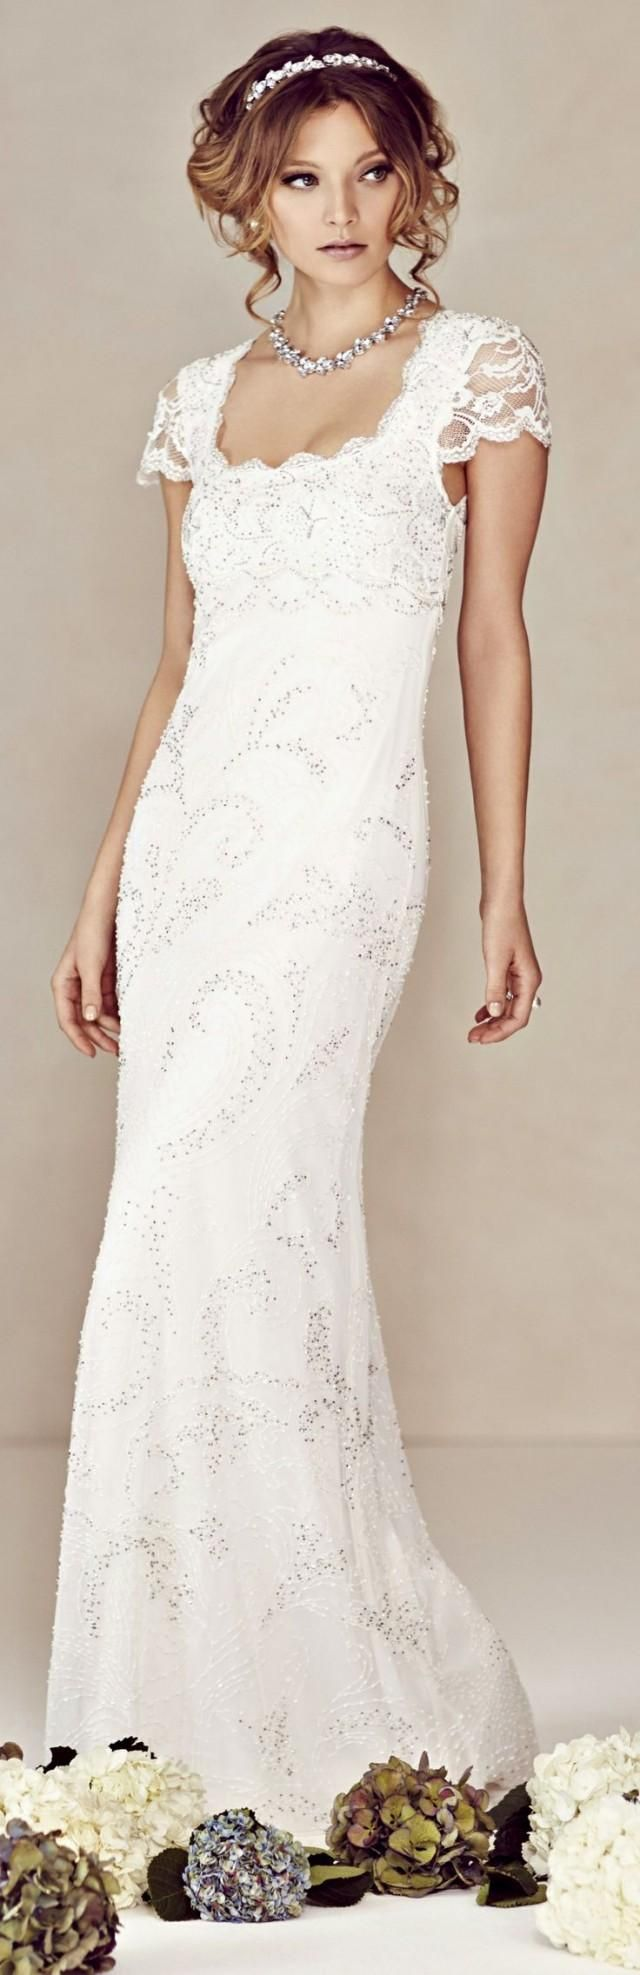 How to Be a Gatsby Flapper Bride - Roaring 20\'s Style - (article ...